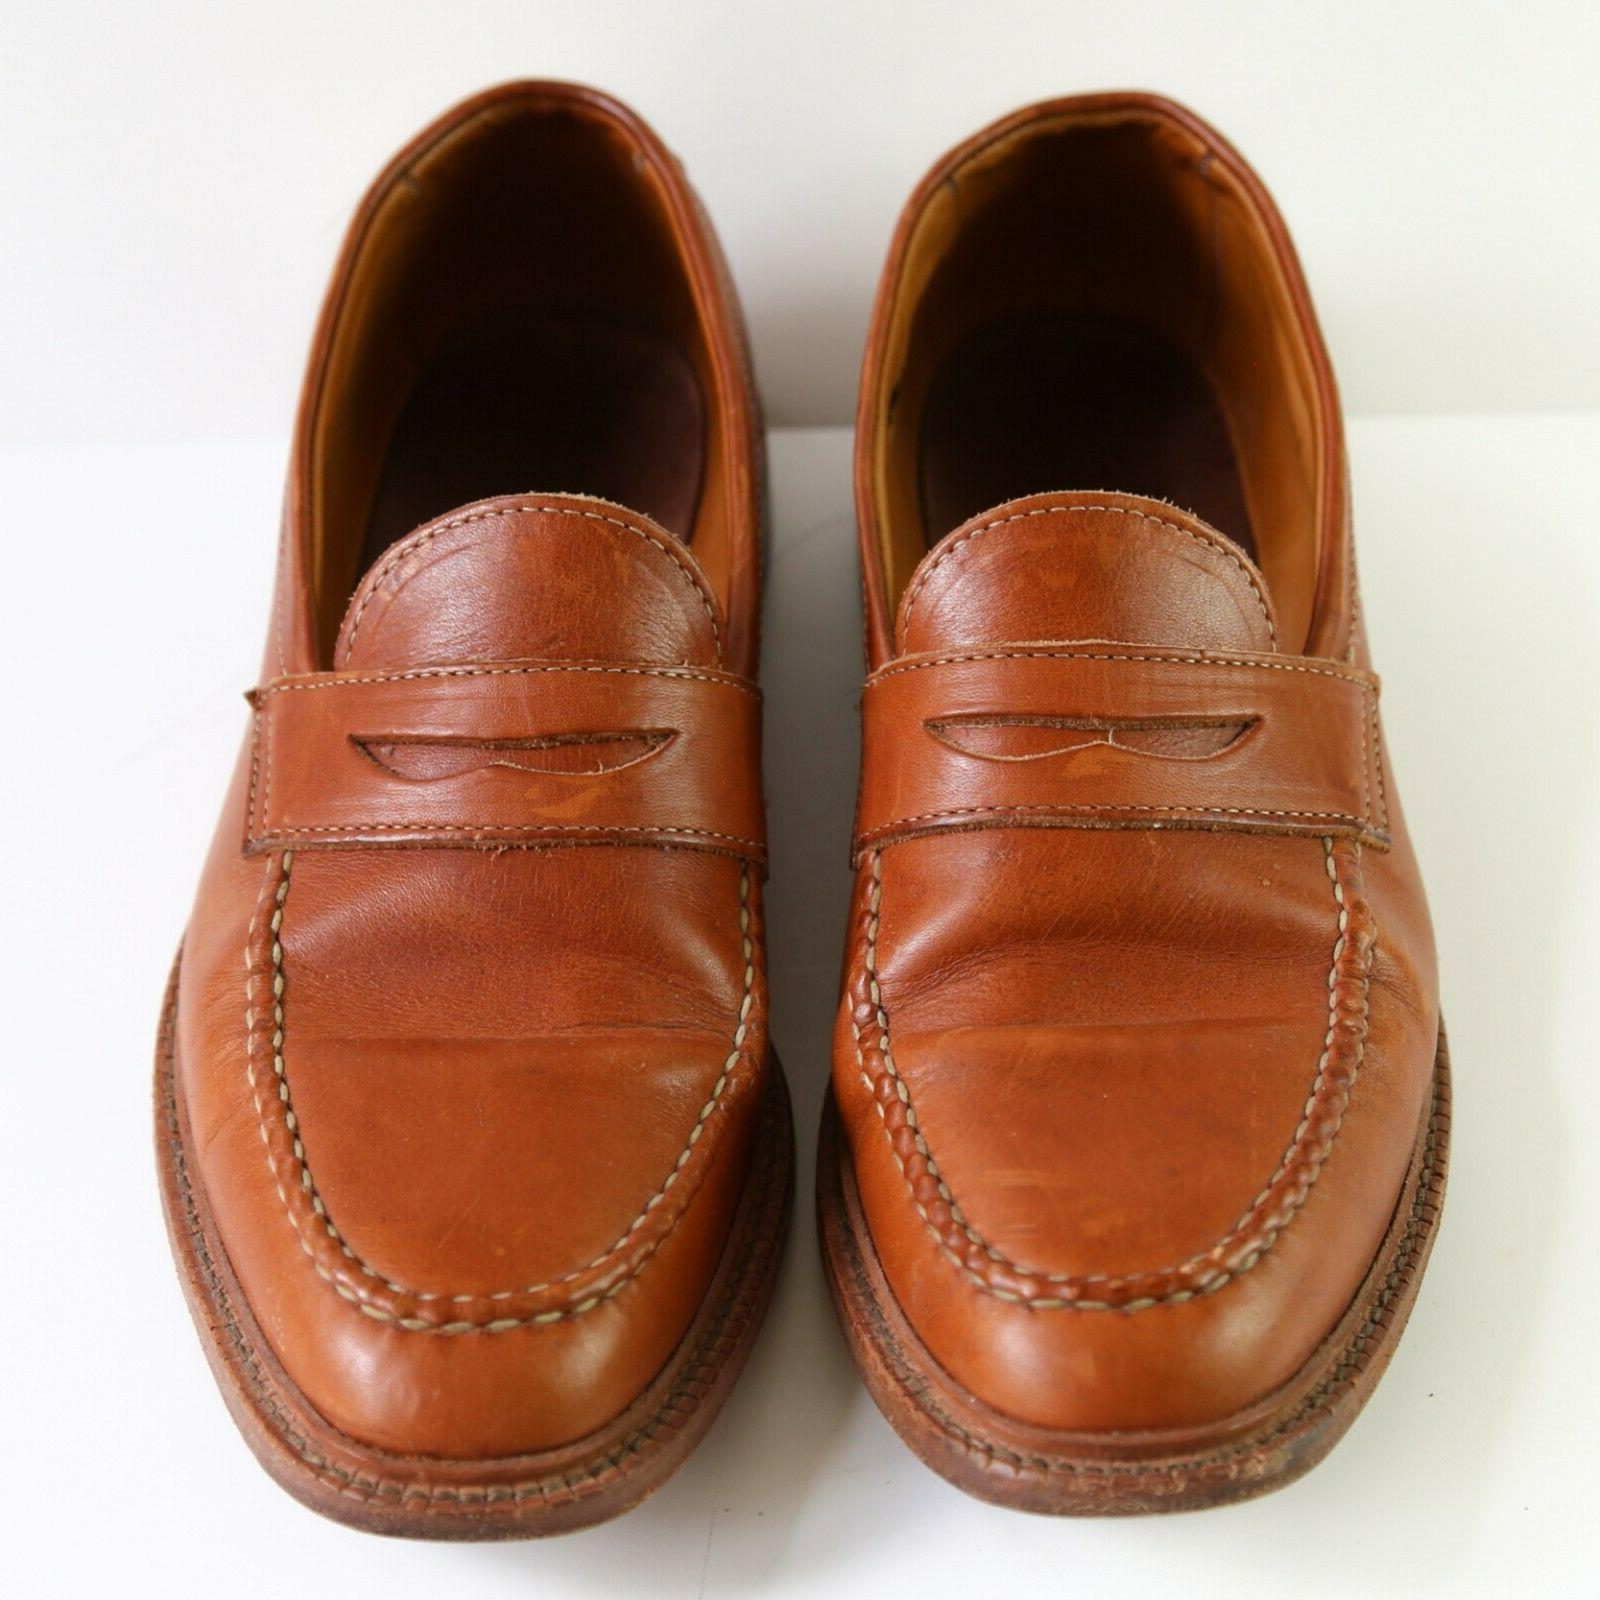 Allen Penny Loafers Size 12 D Brown Made in